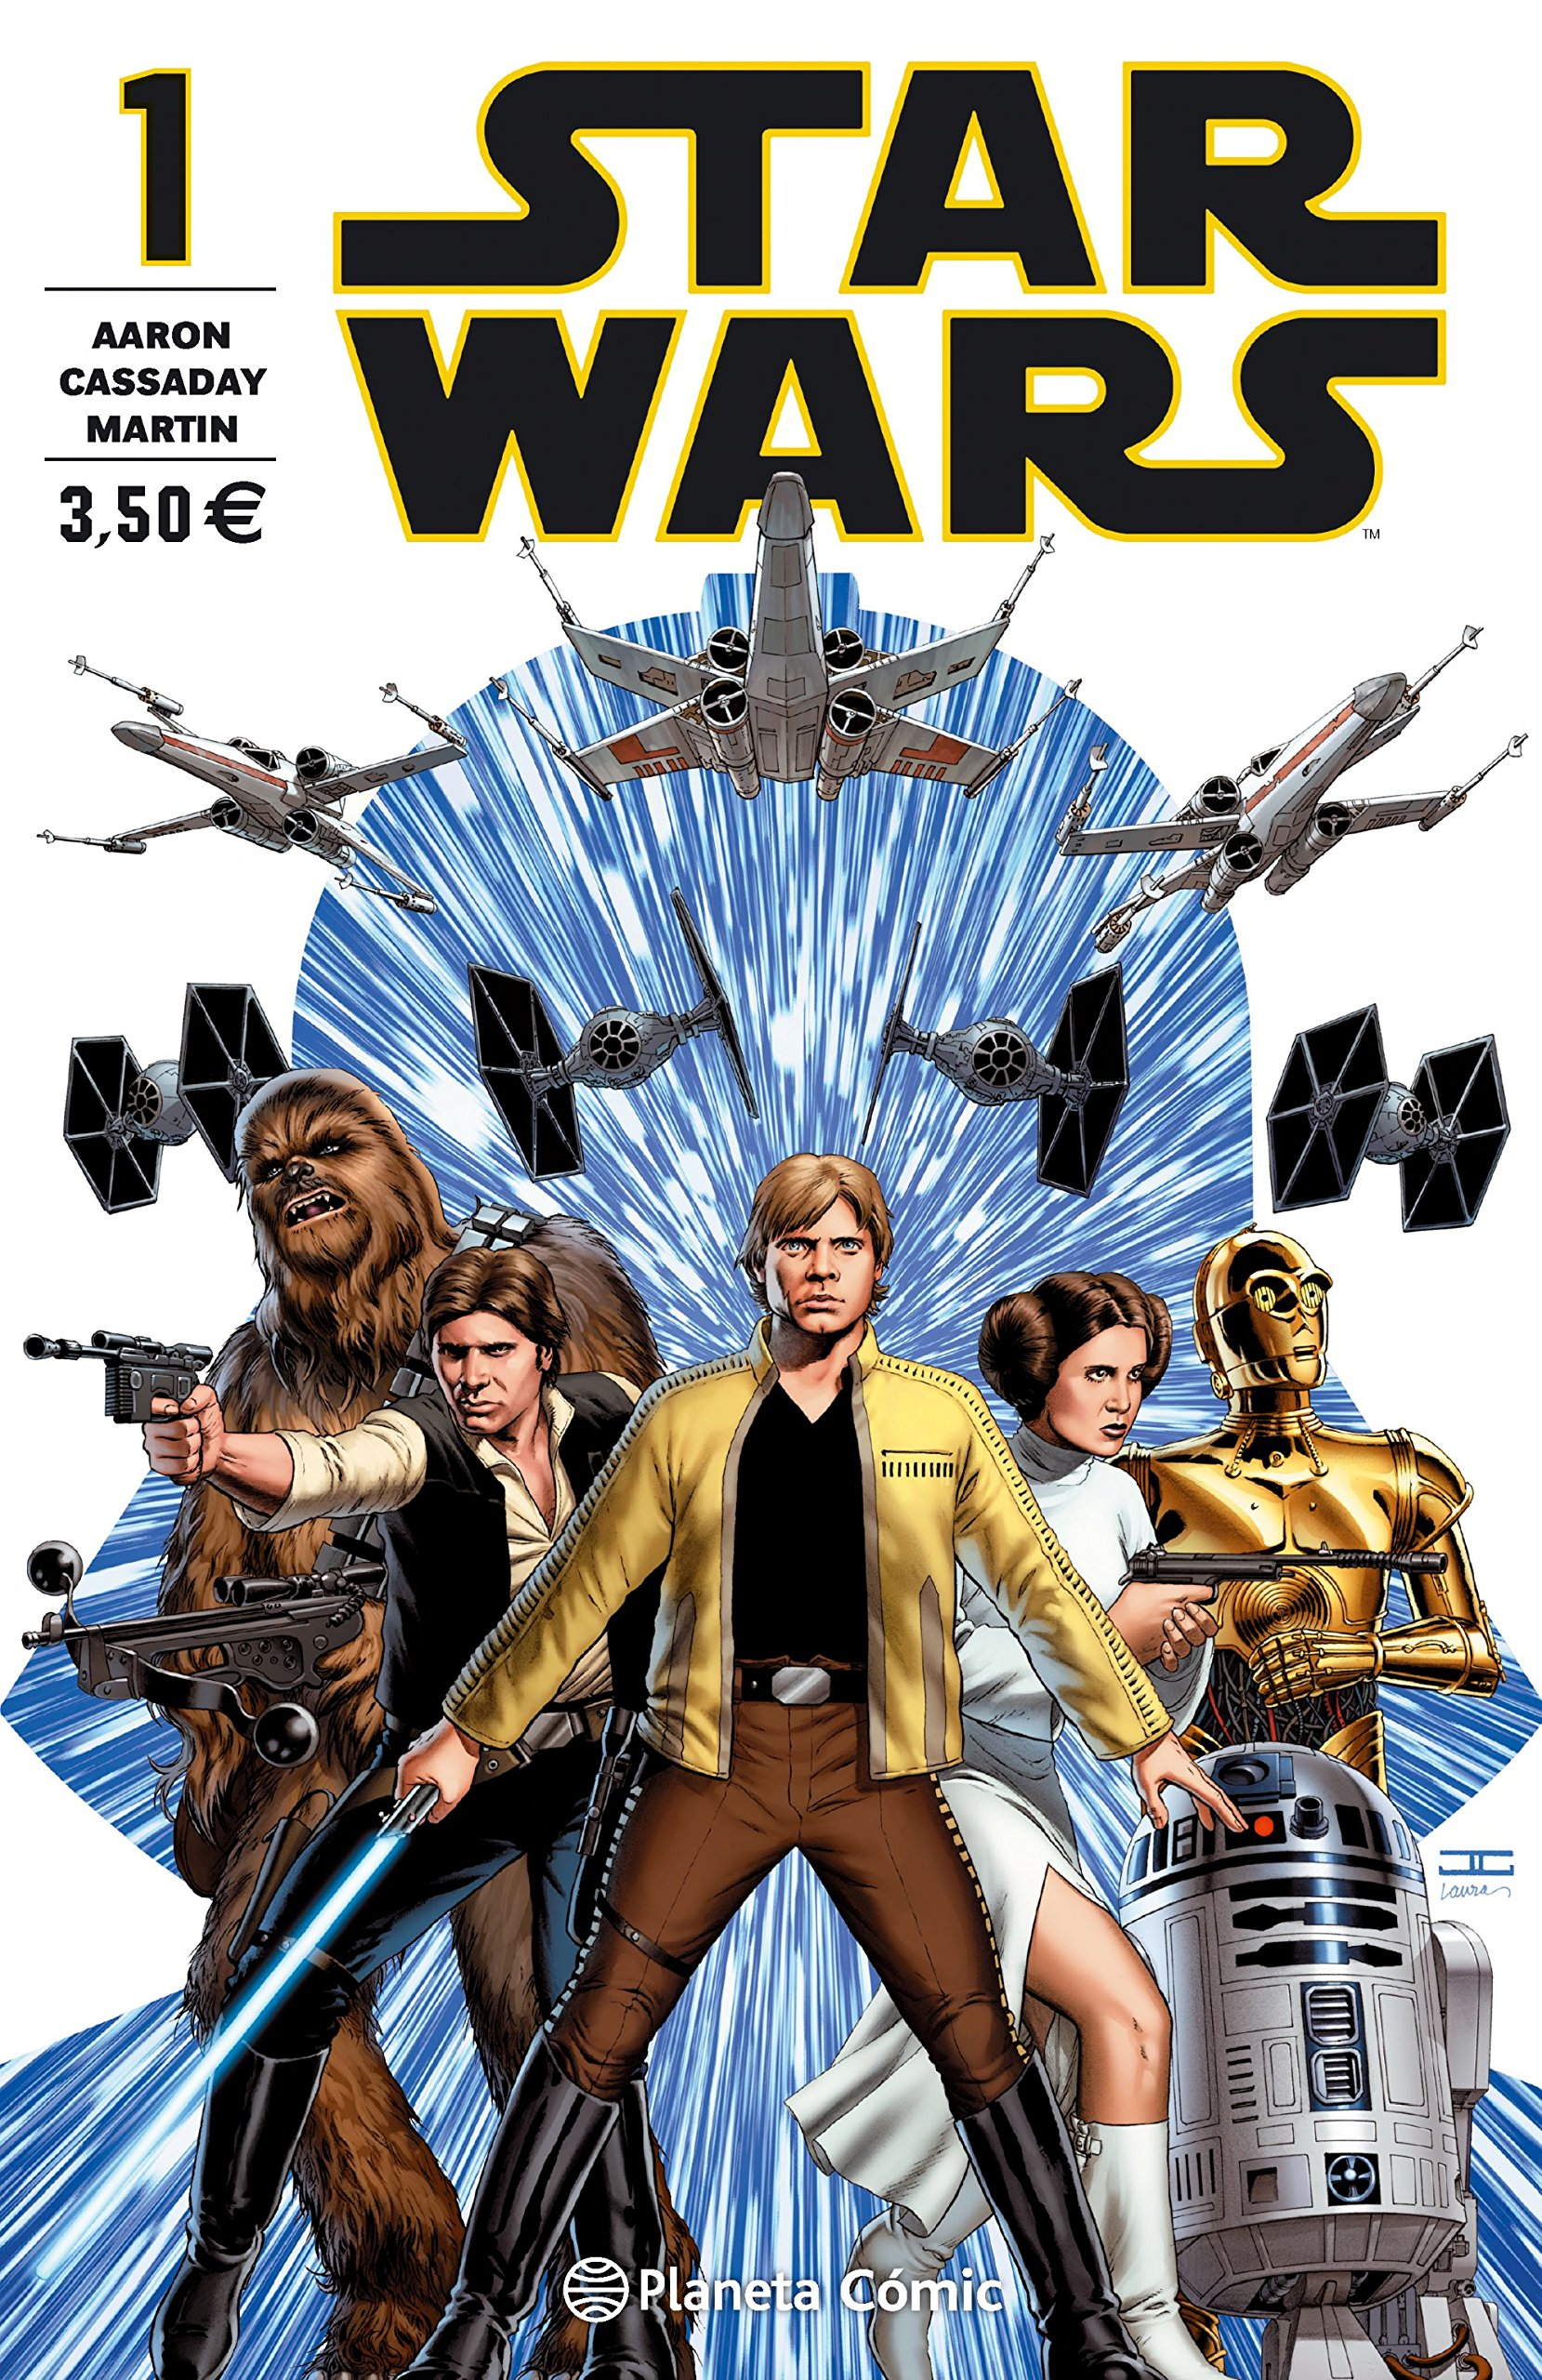 Star Wars Vol.2 #1